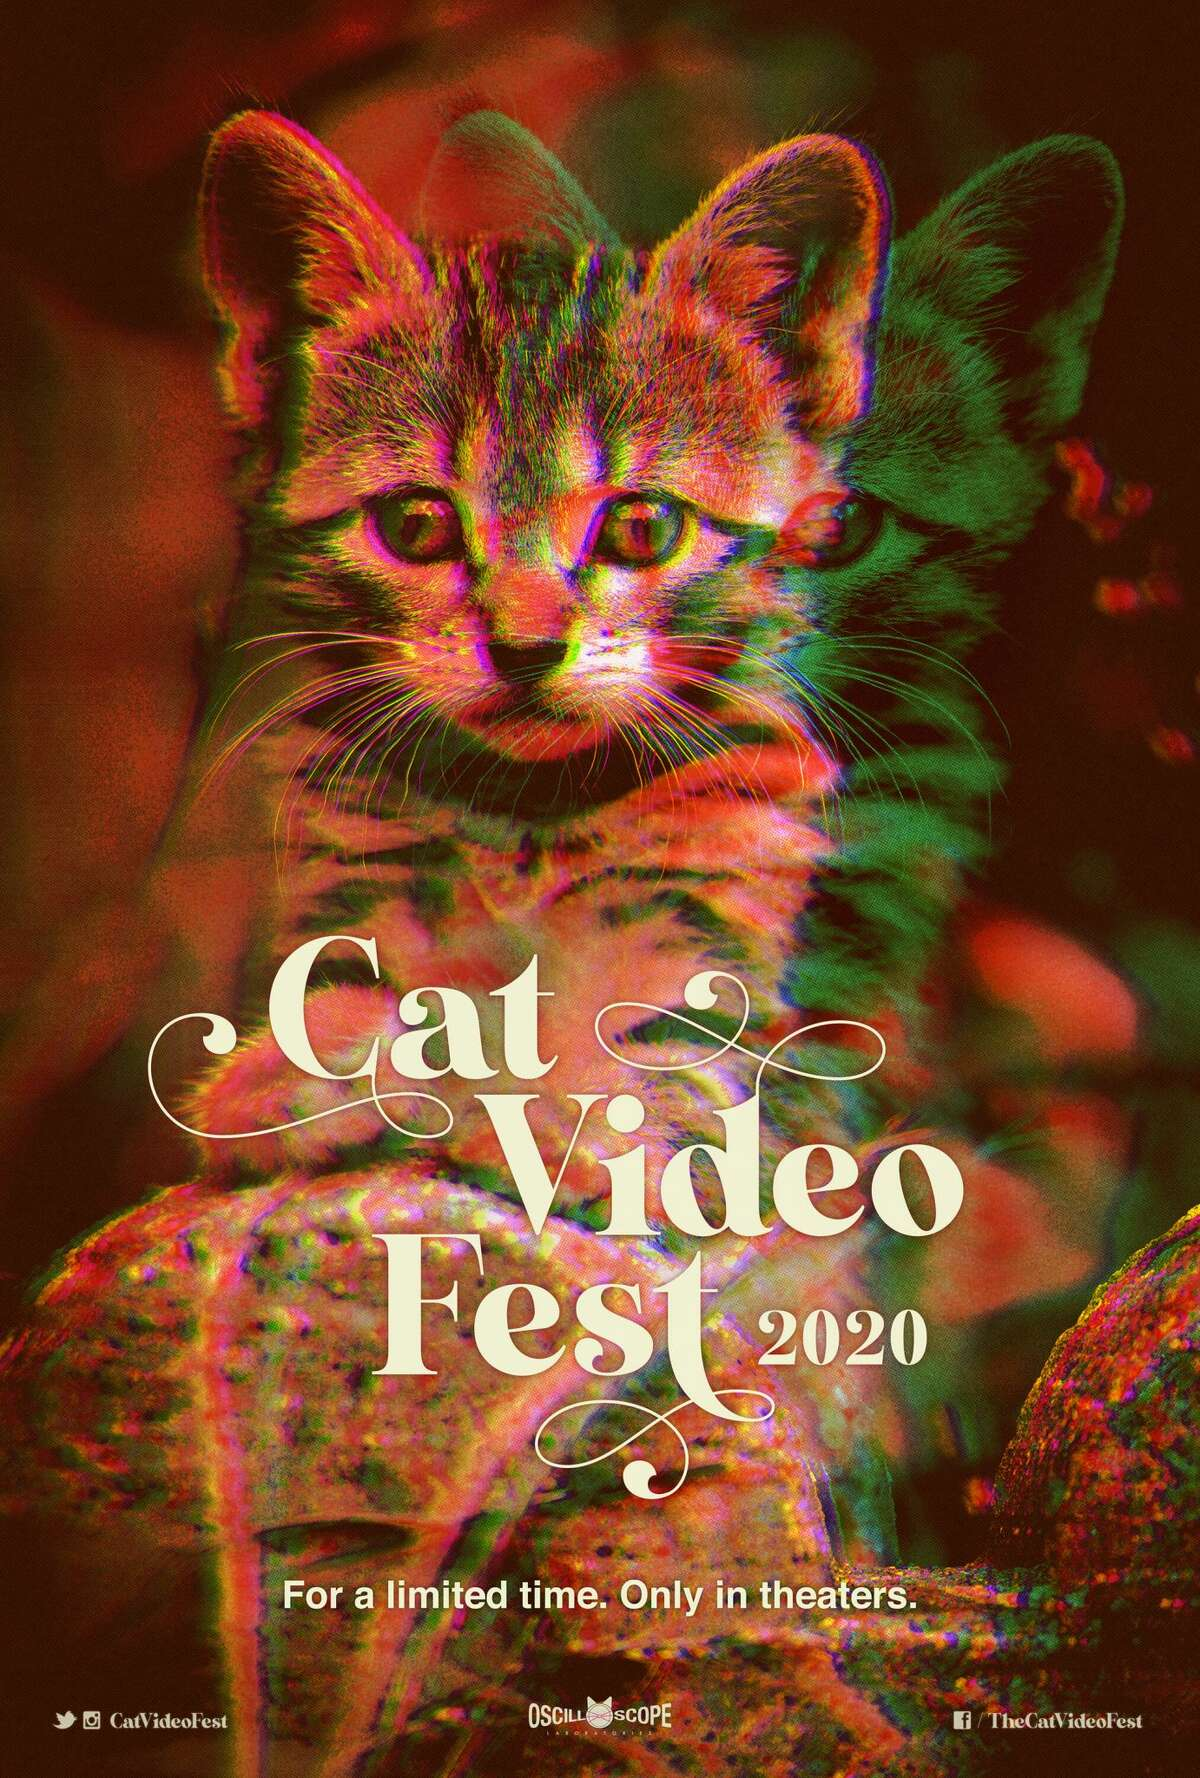 CatVideoFest2020 is coming to Stamford's Avon Theatre on Friday. Find out more.